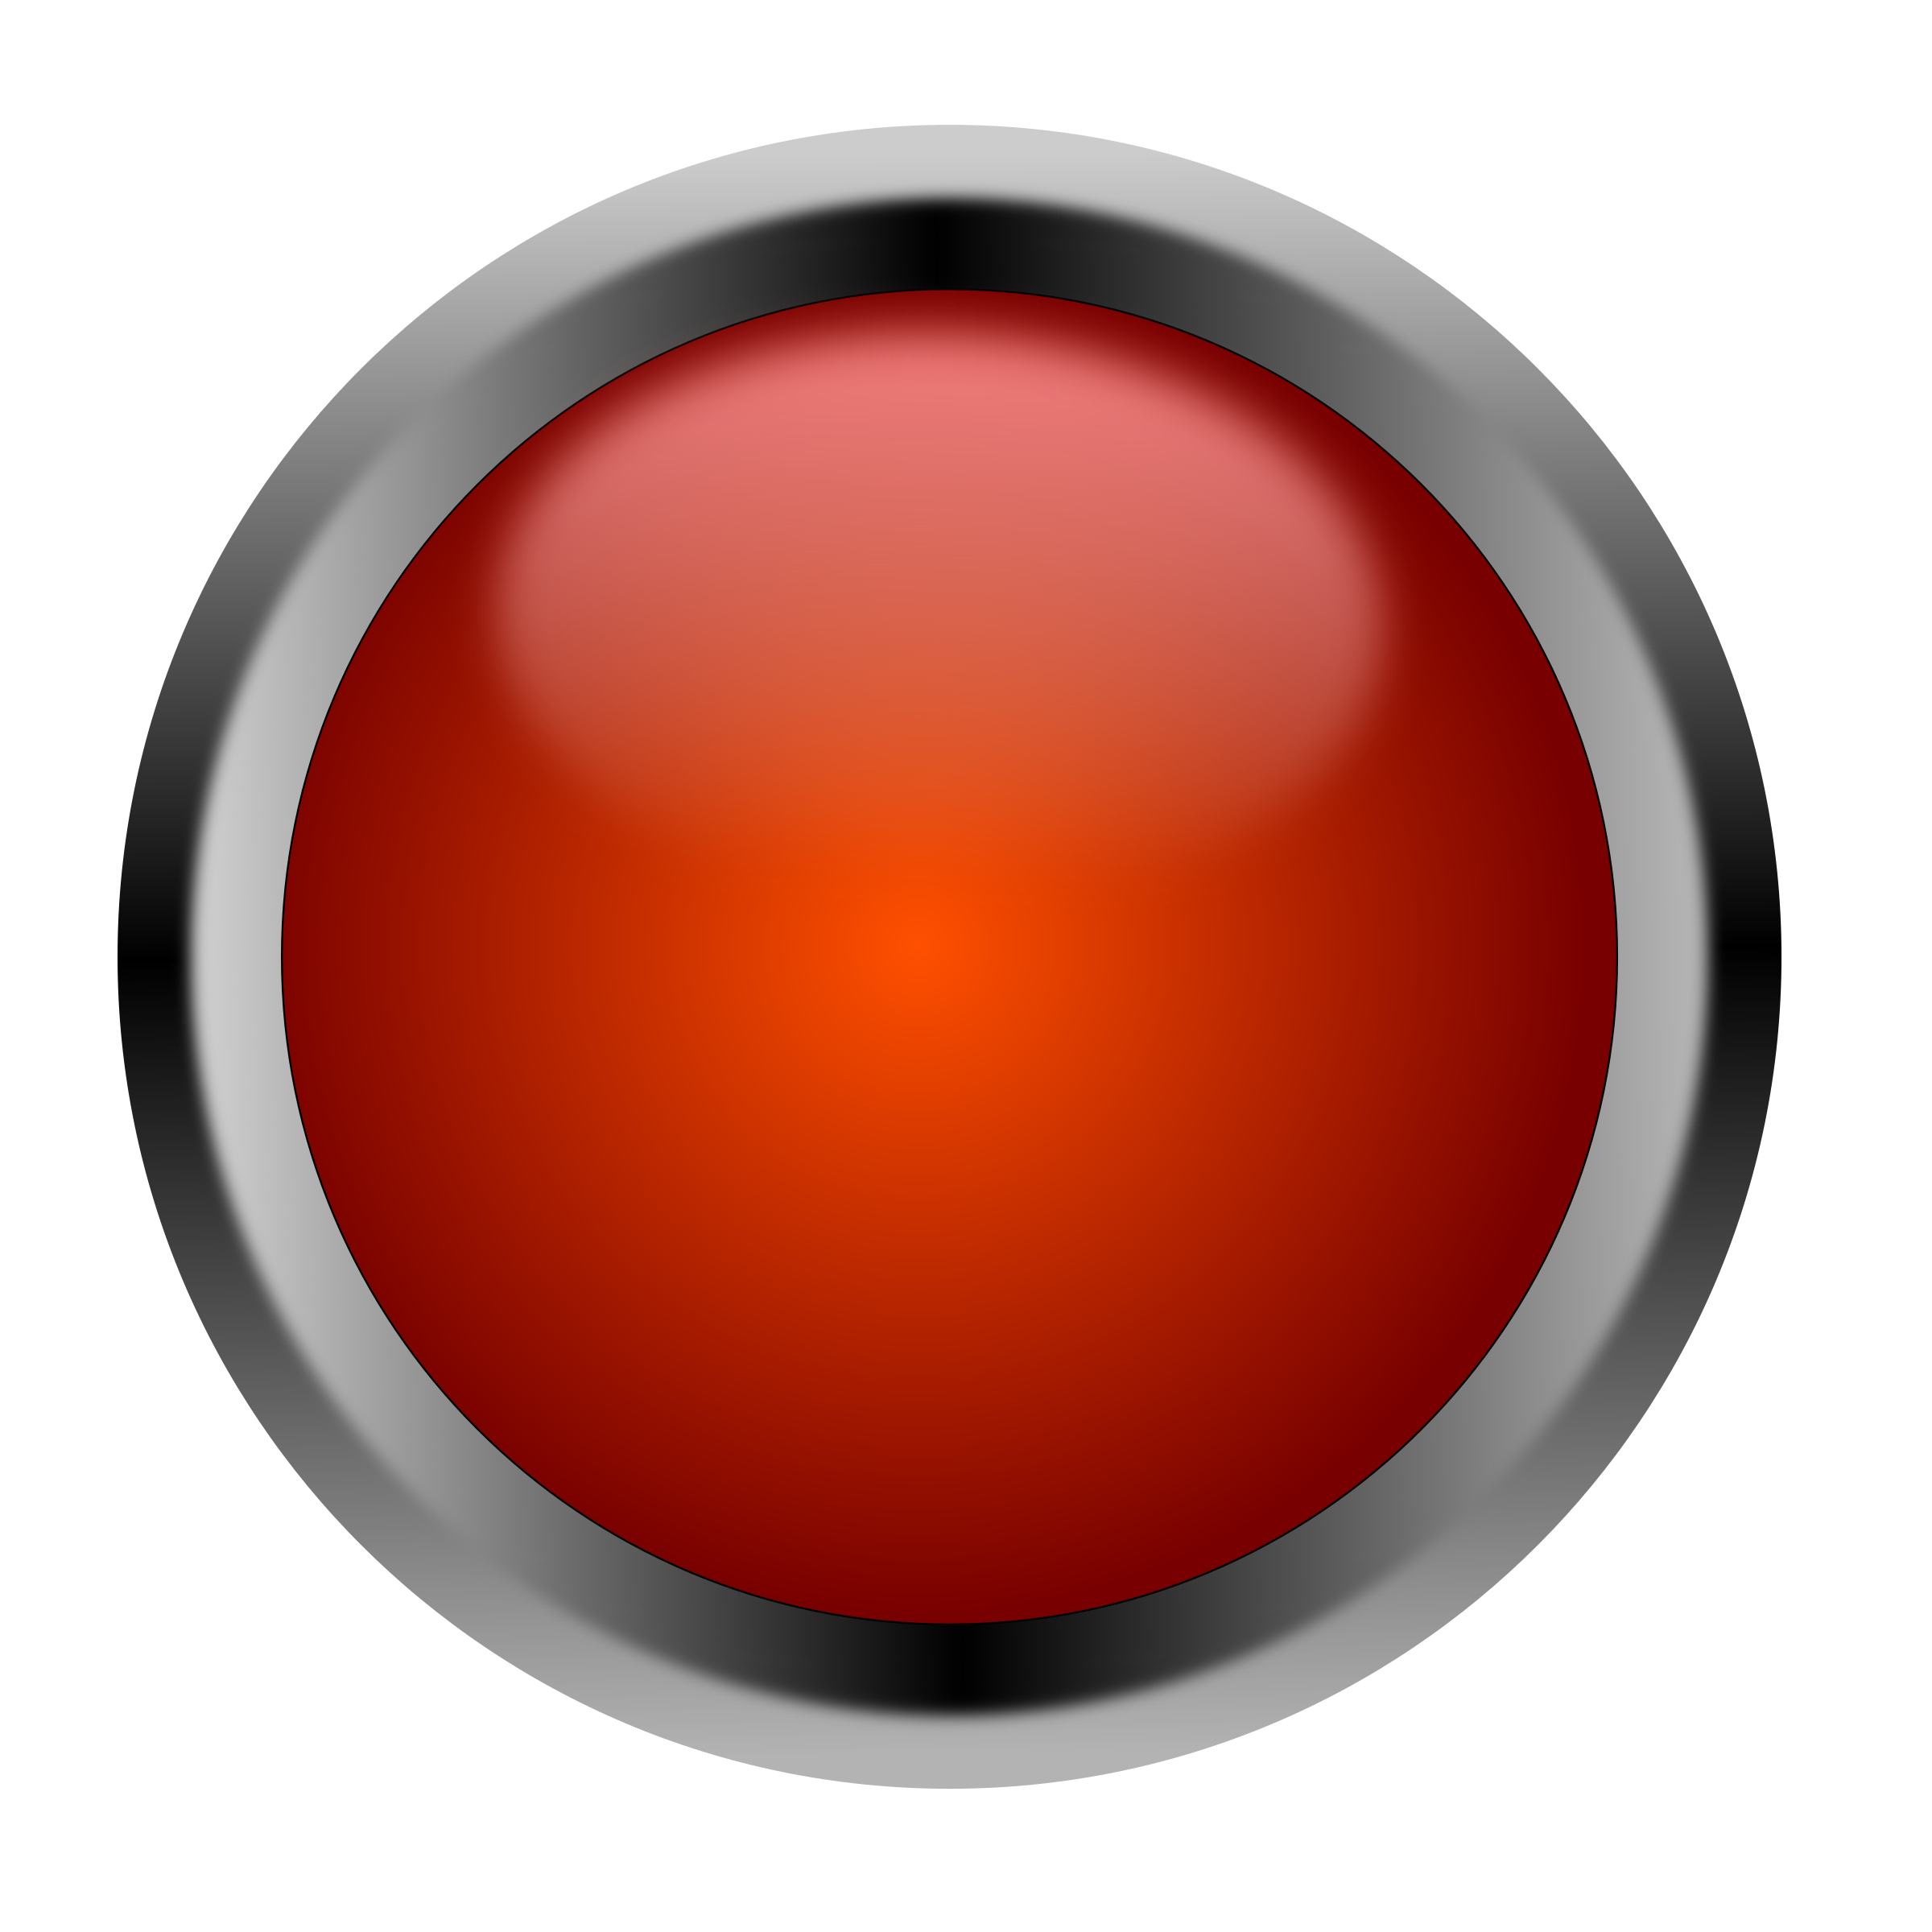 glowing buttons png